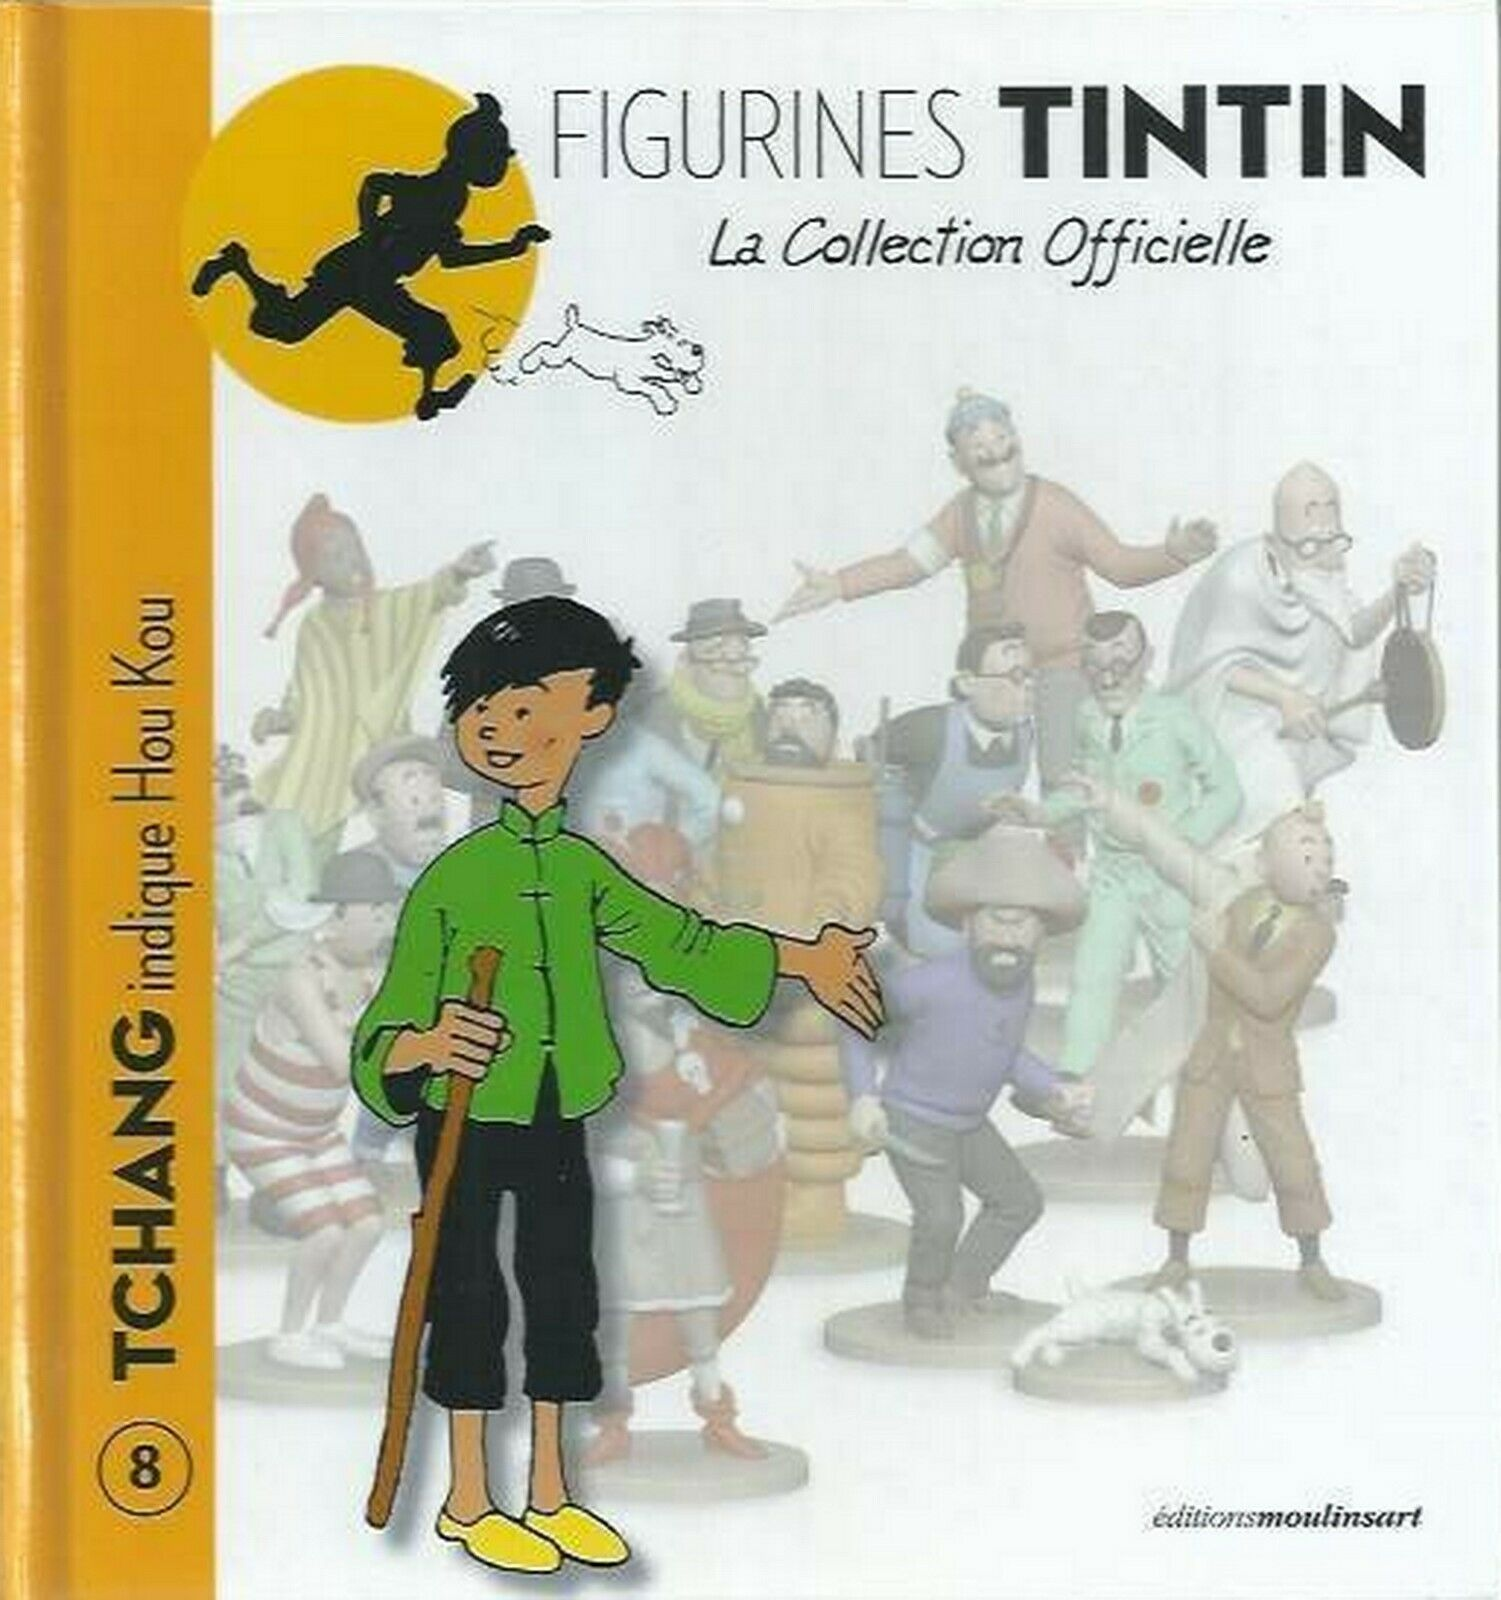 Collection officielle figurine Tintin Moulinsart 47 Bobby Smiles